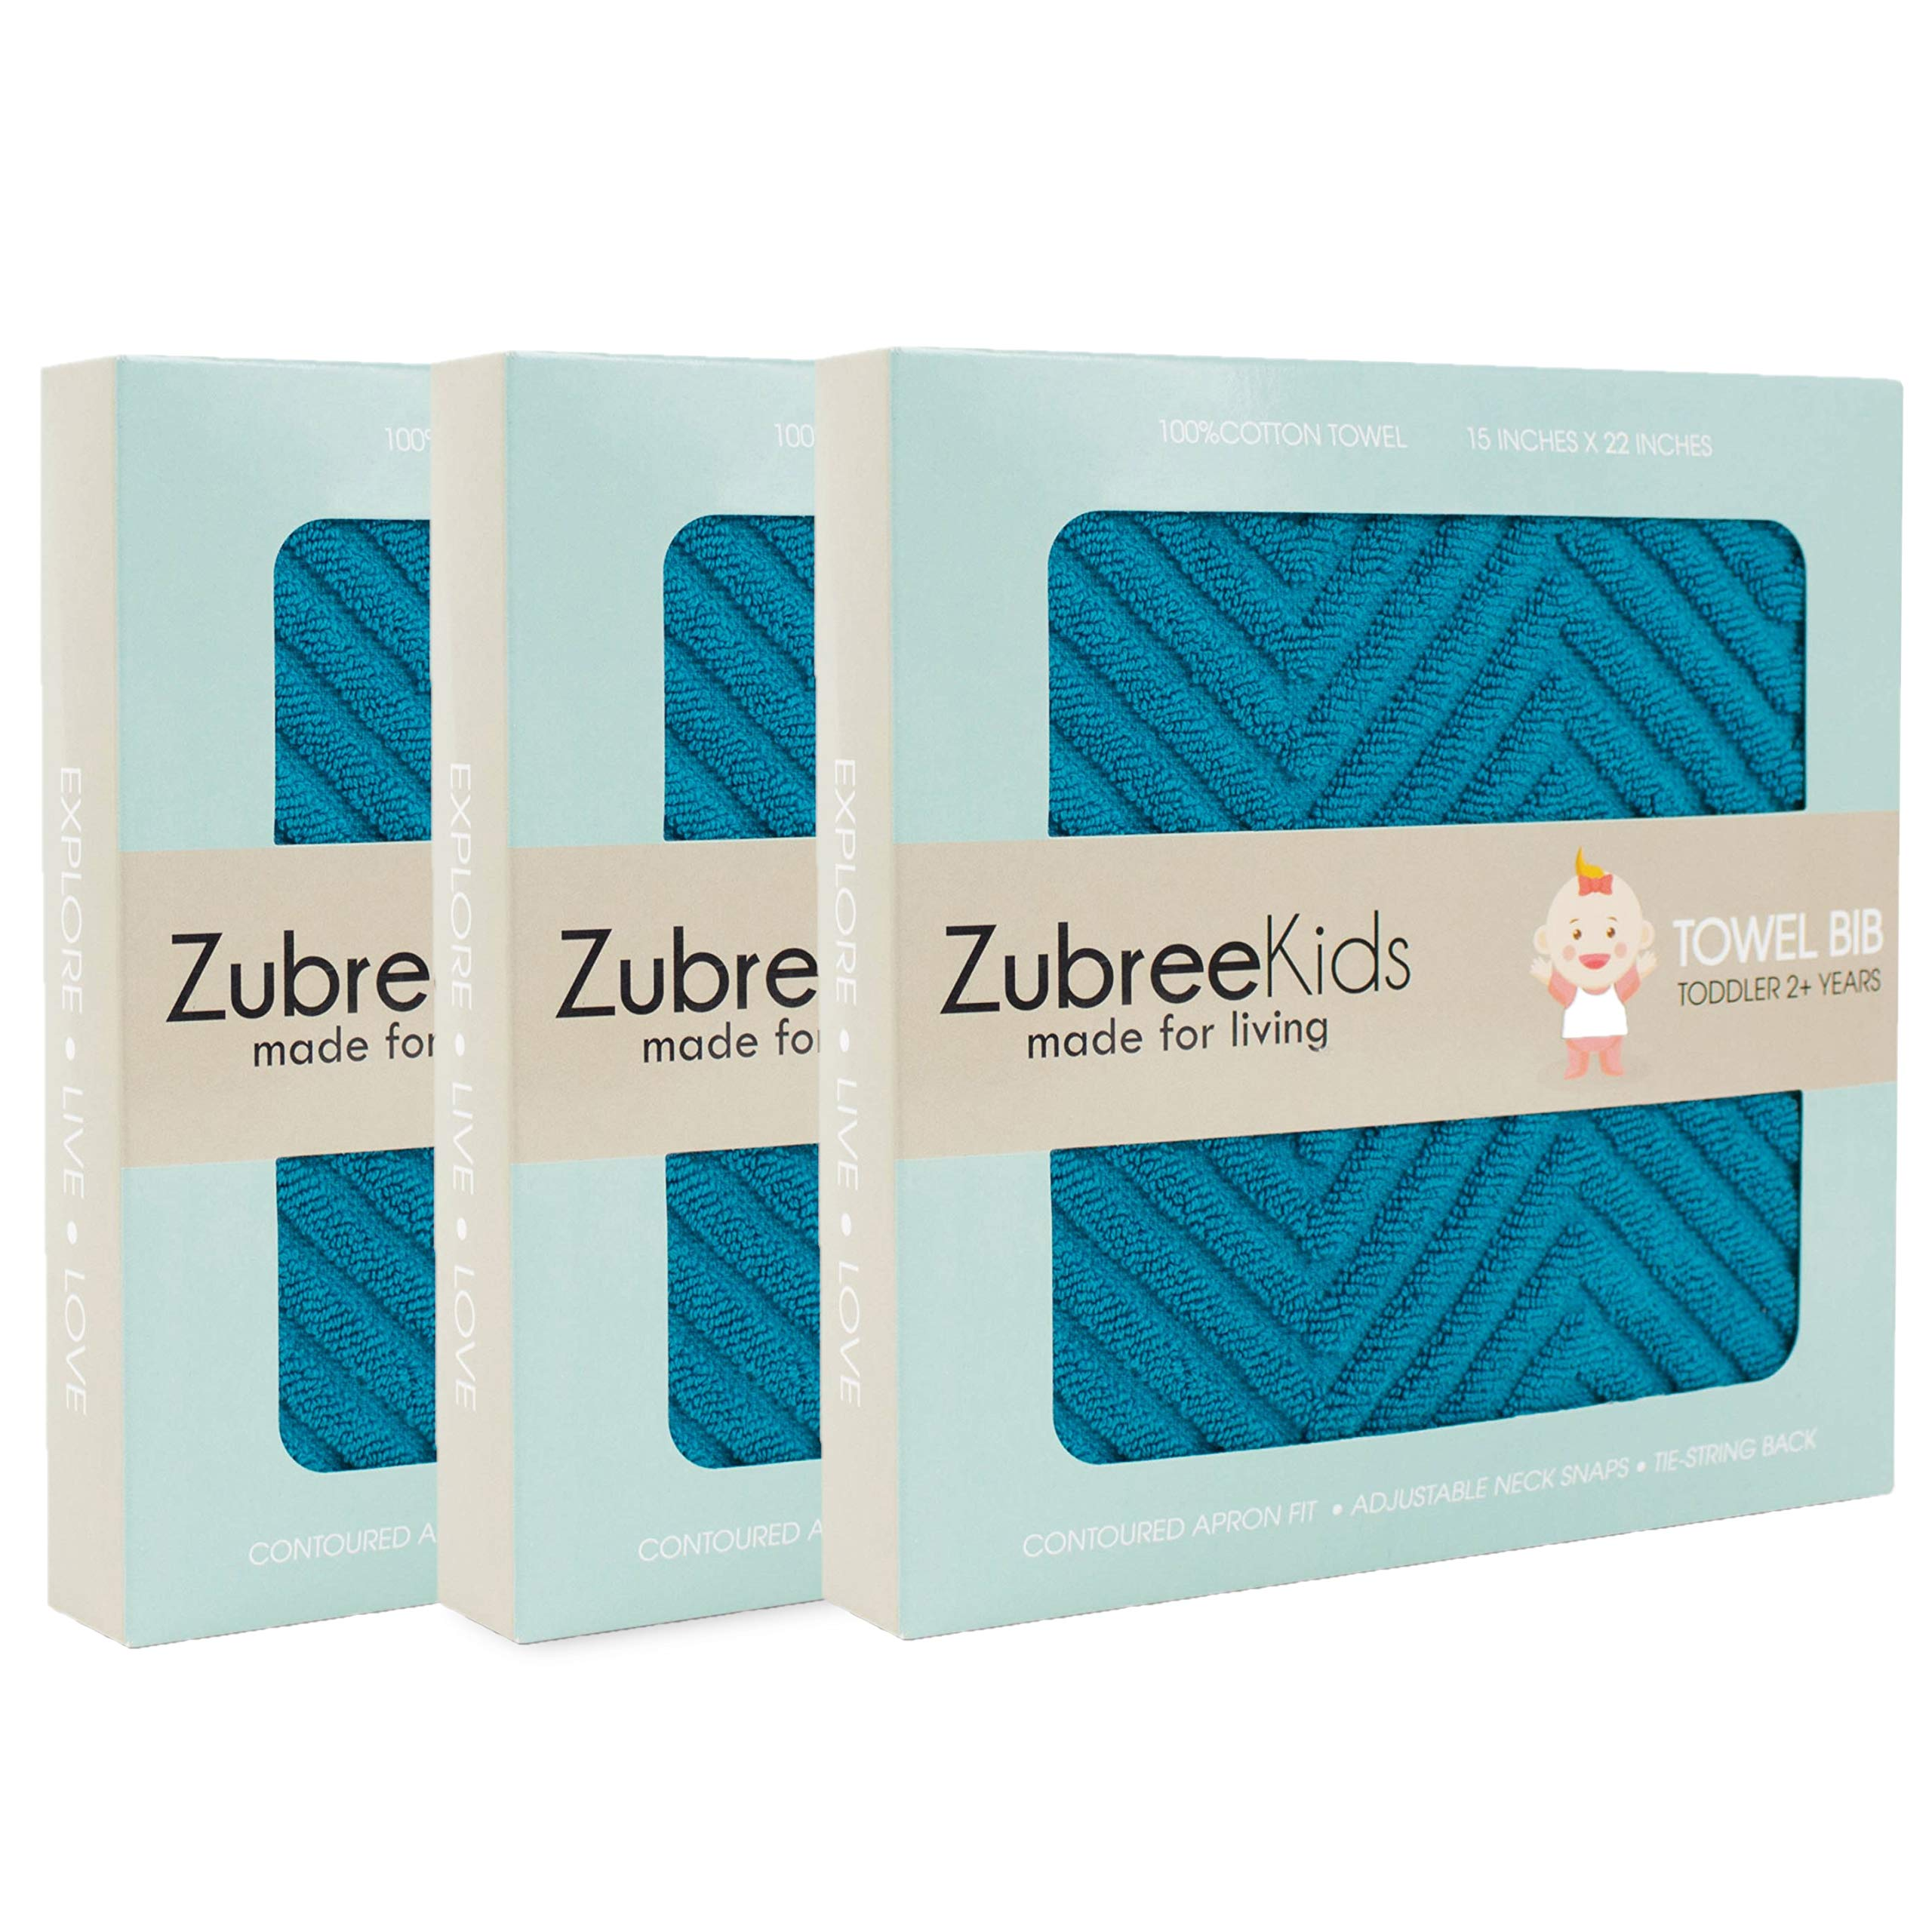 Zubree Toddler Bib 3 Pack - Thick as a Hand Towel, Ultra-Absorbent Cotton, Comfortable, Large Coverage, Tug-Proof Snaps (18mo-5y) (3)